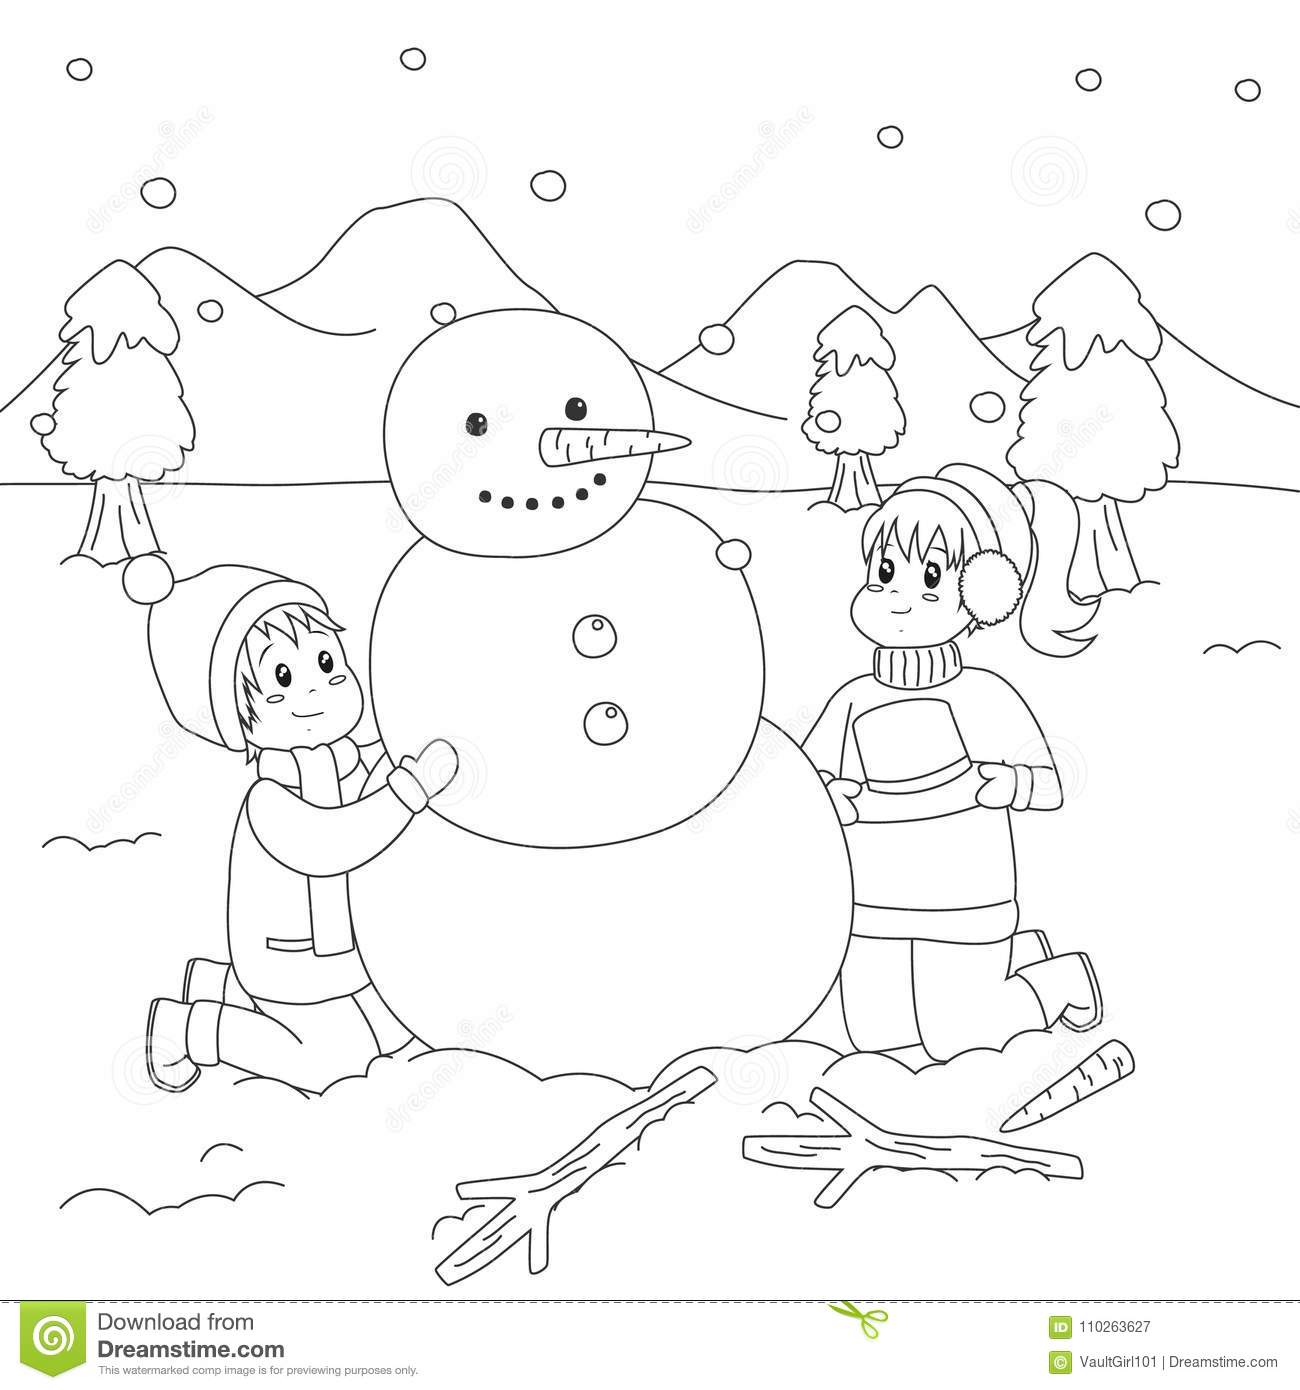 Snowy Day Coloring Pages - Coloring Home | 1390x1300